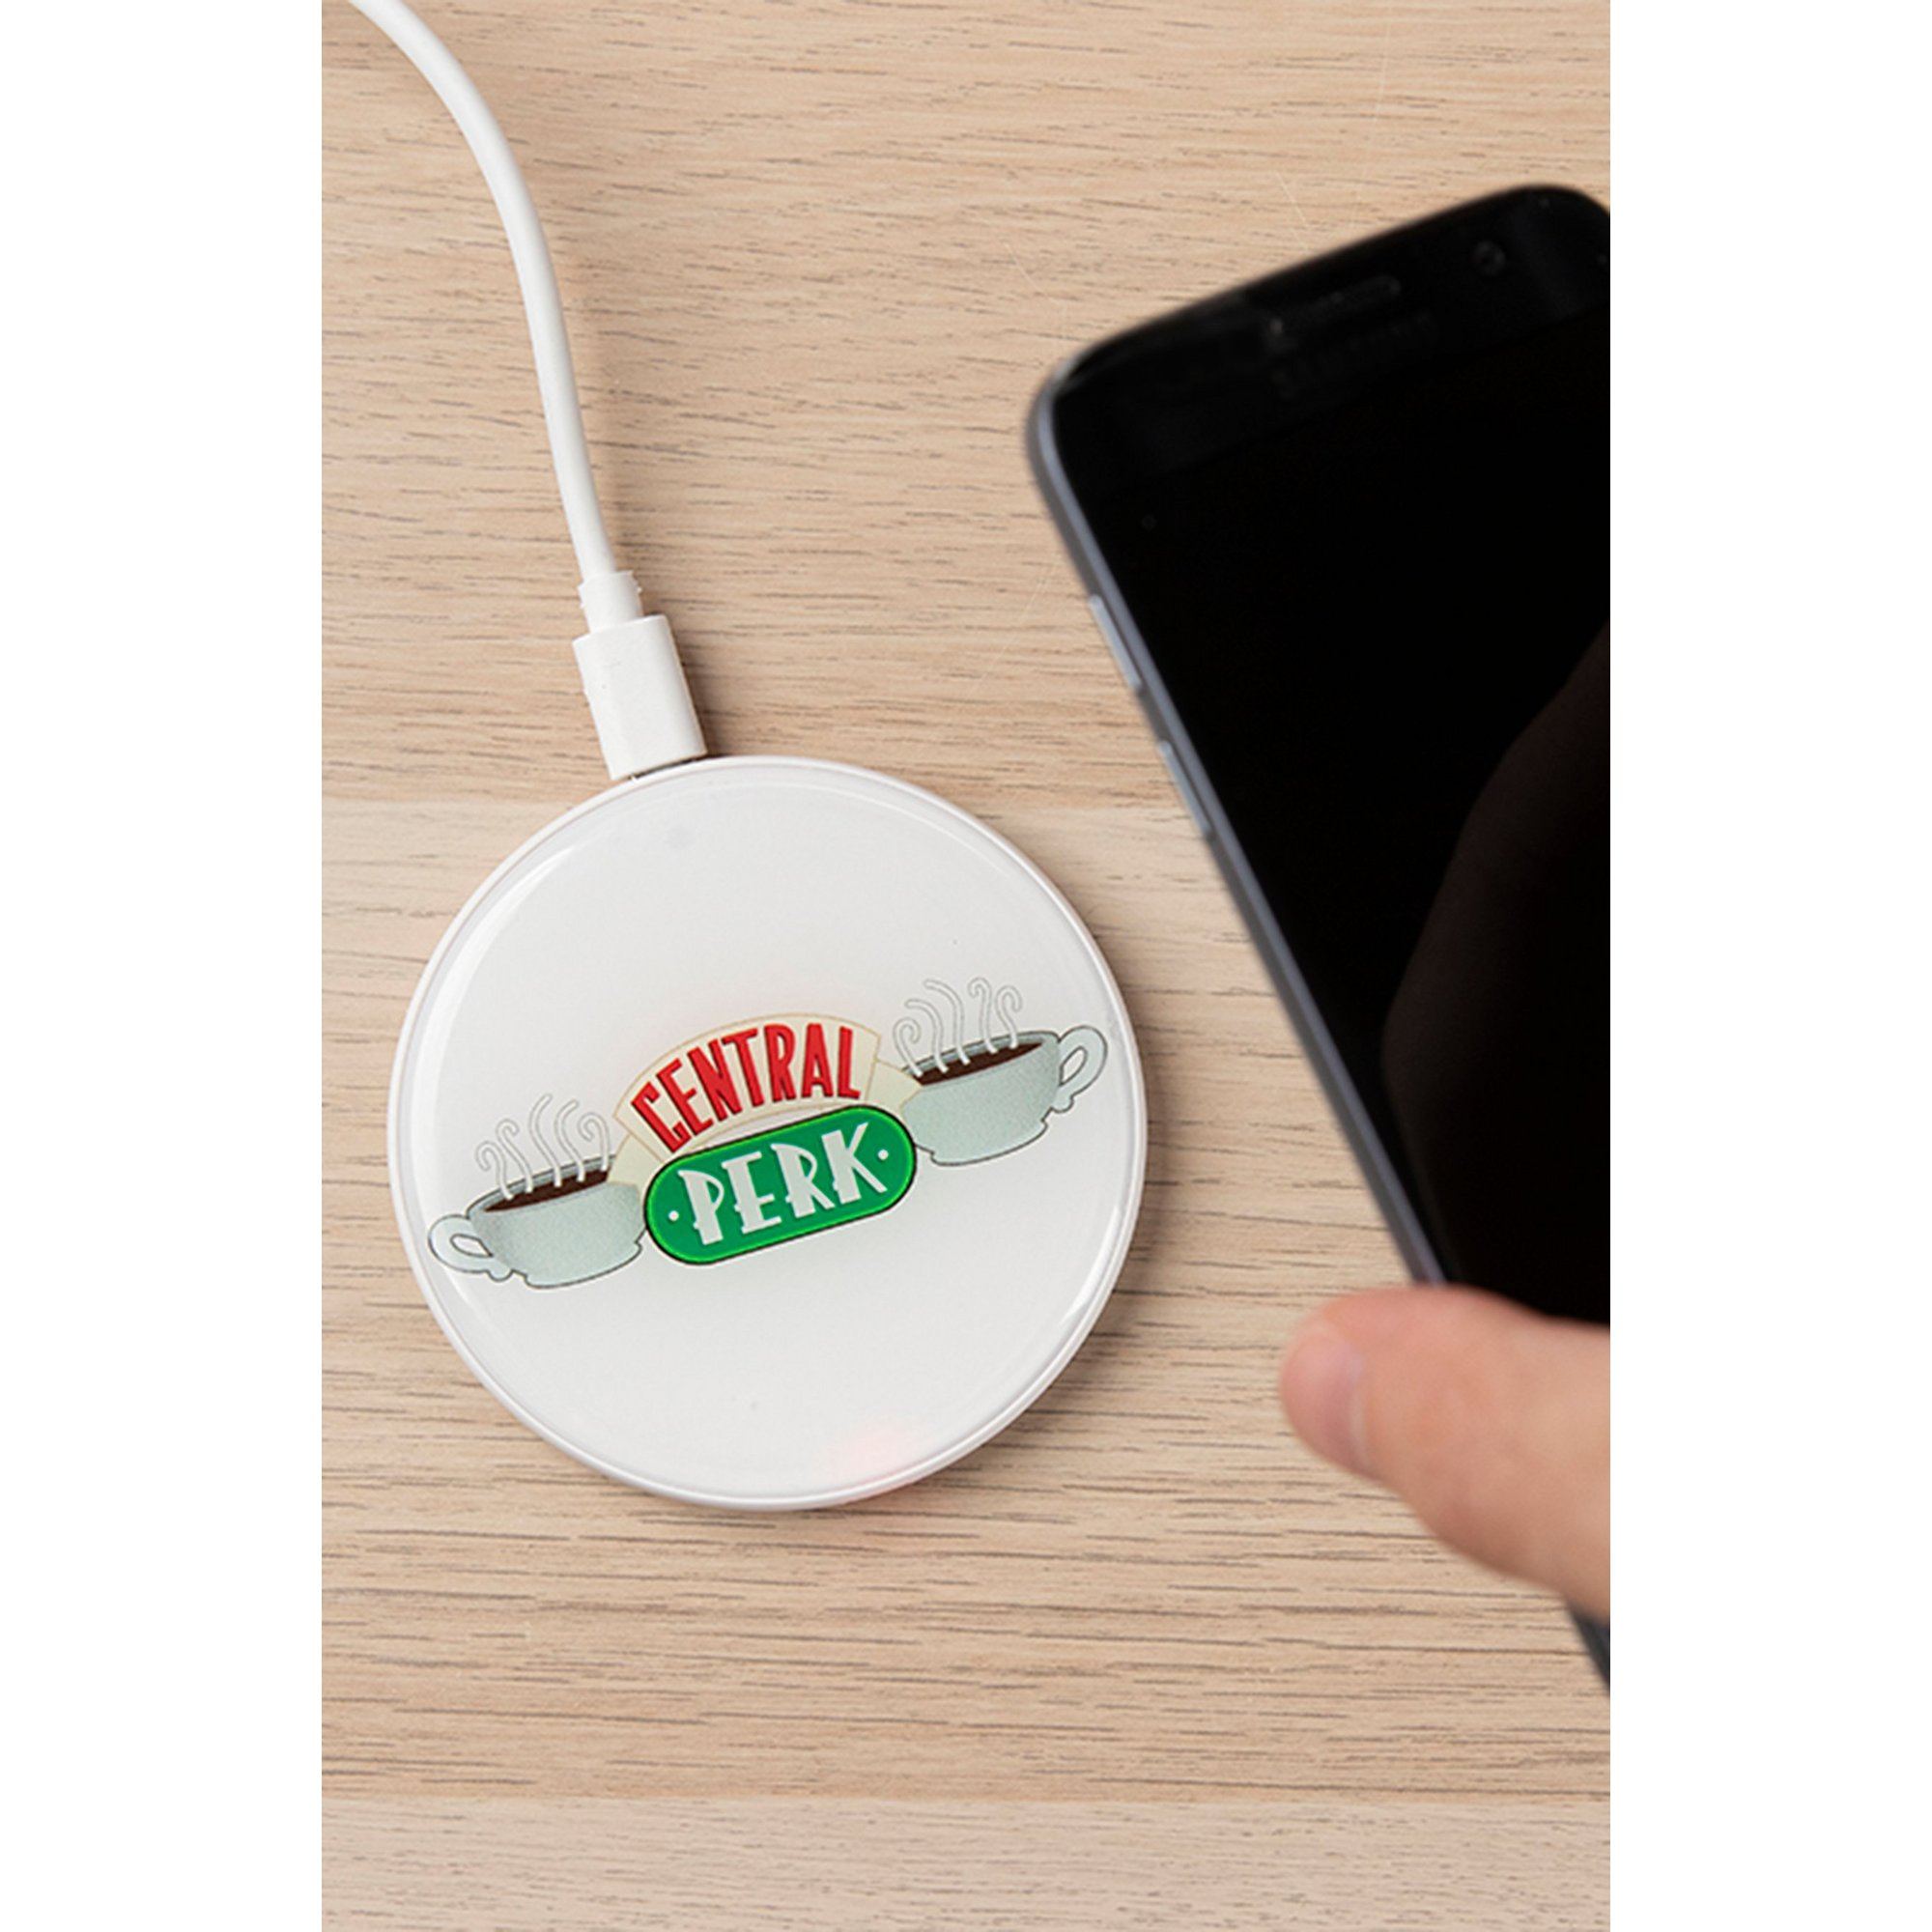 Image of Central Perk Wireless Charger